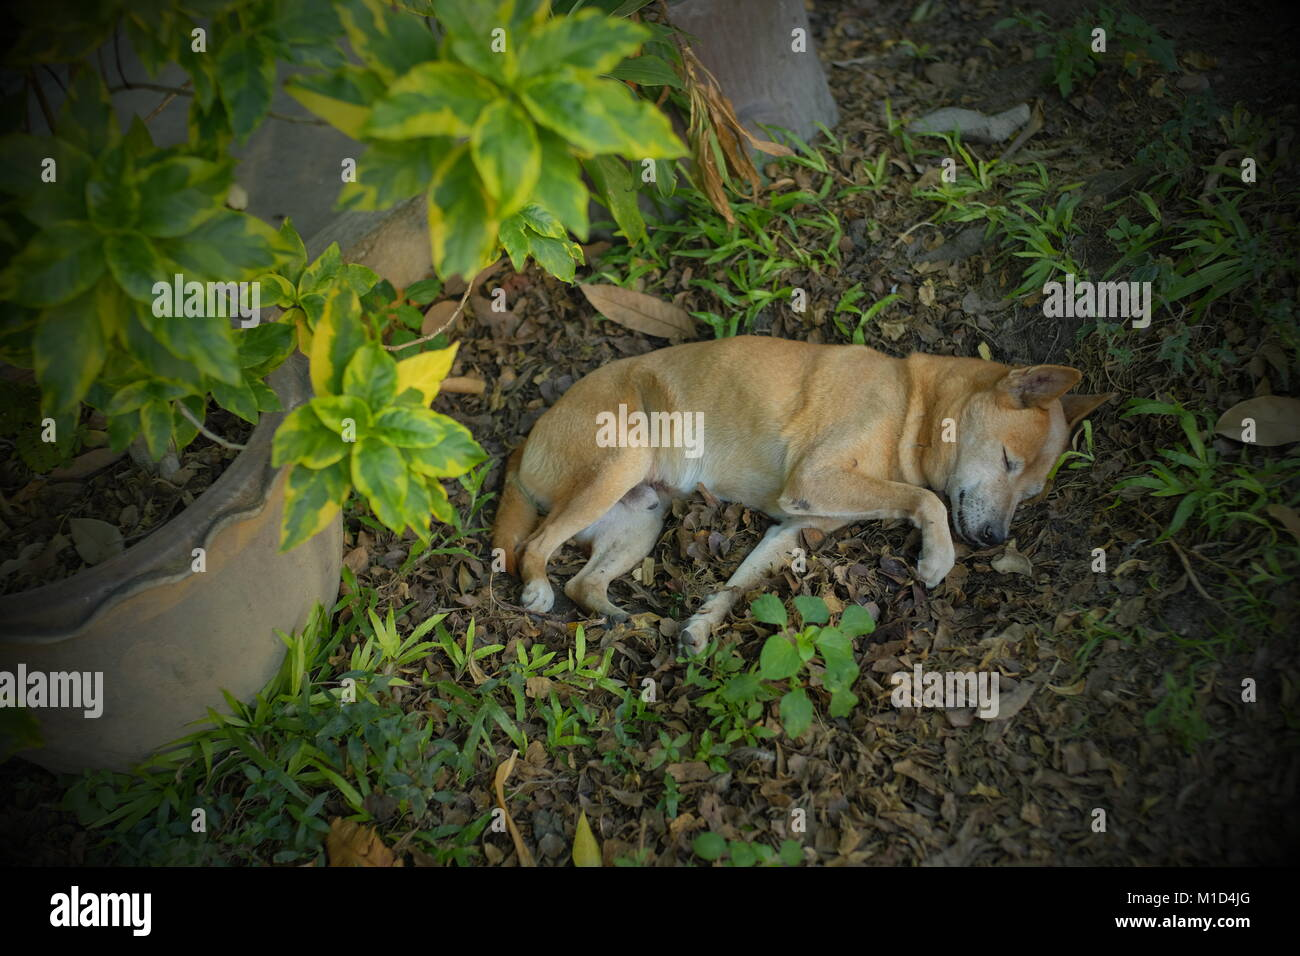 A dog sleeping in a temple in Qiang Mai, Thailand. - Stock Image